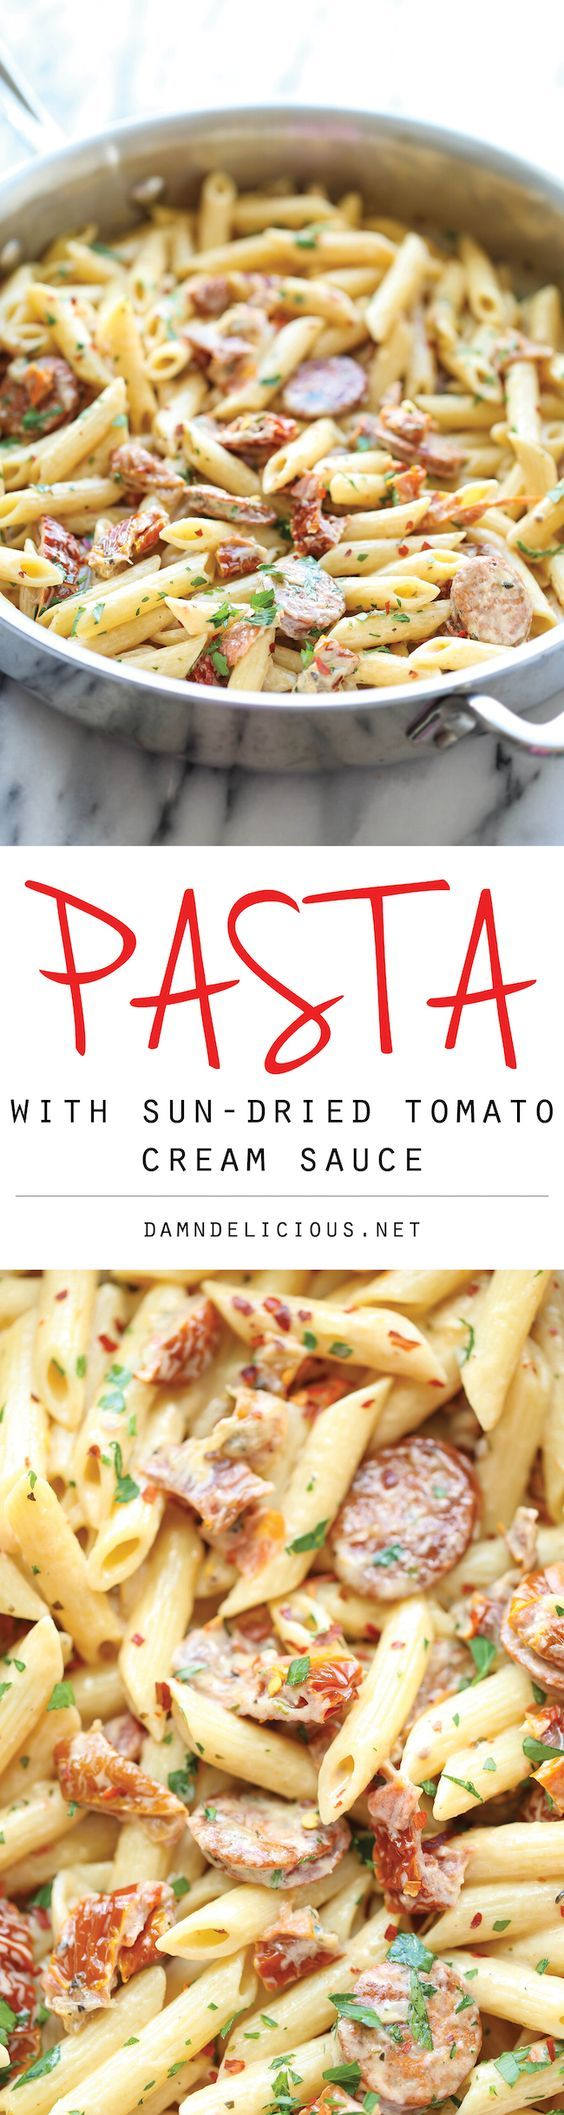 Pasta with Sun-Dried Tomato Cream Sauce - A super easy pasta dish with the most amazing, creamiest sun-dried tomato sauce ever, made in less than 30 min!